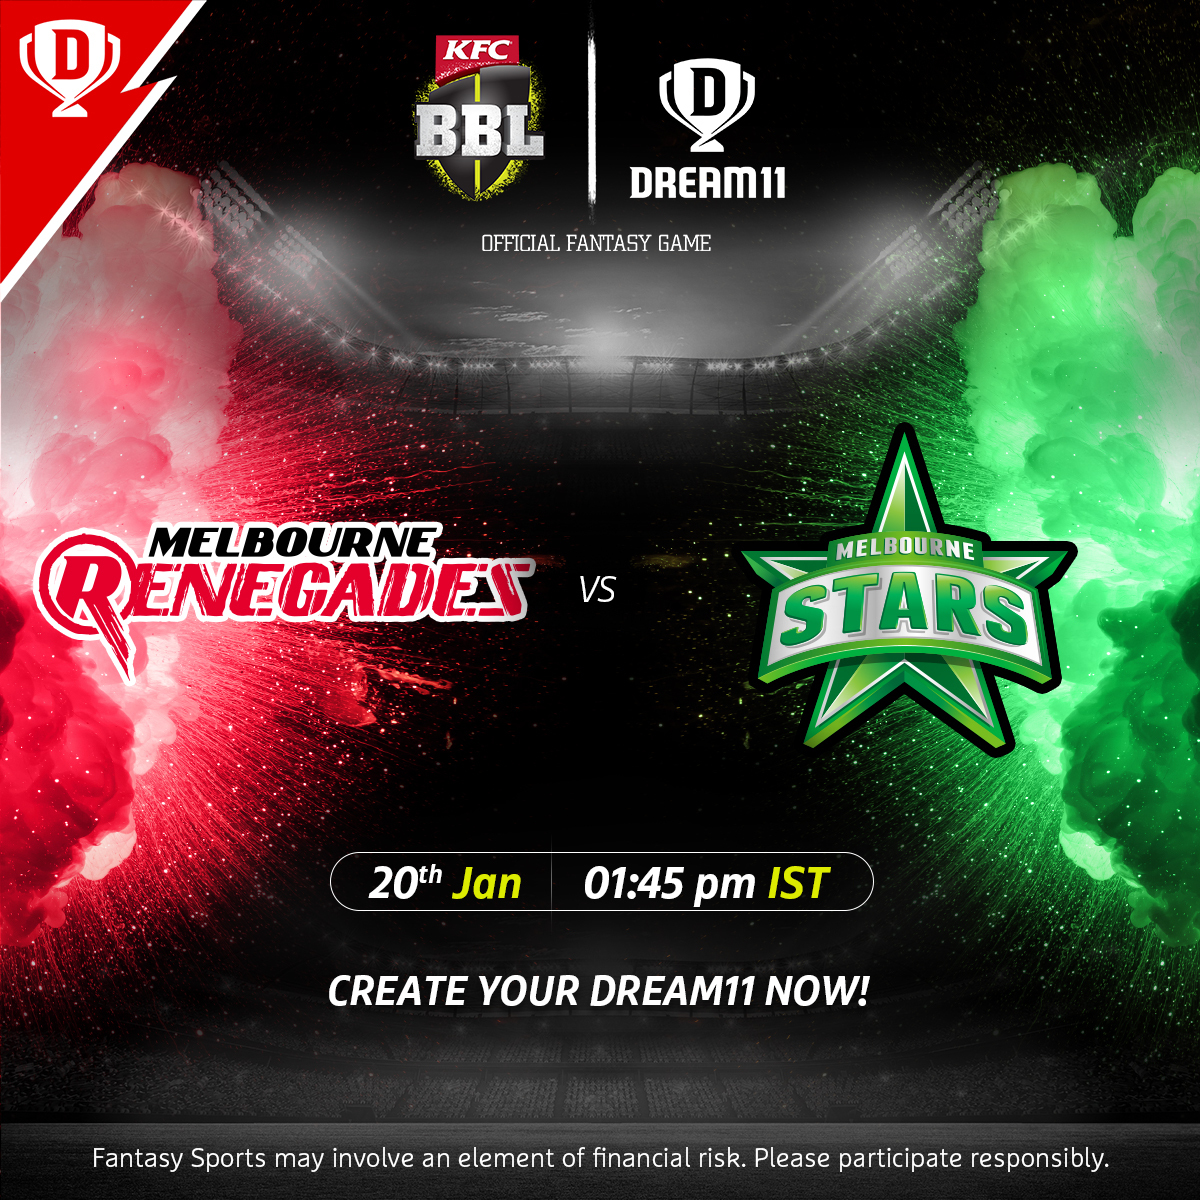 Familiar foes, Renegades get ready to host Stars in the #BBL10 Melbourne derby today 👀  Download the app & create your #Dream11 now. Visit: . @BBL